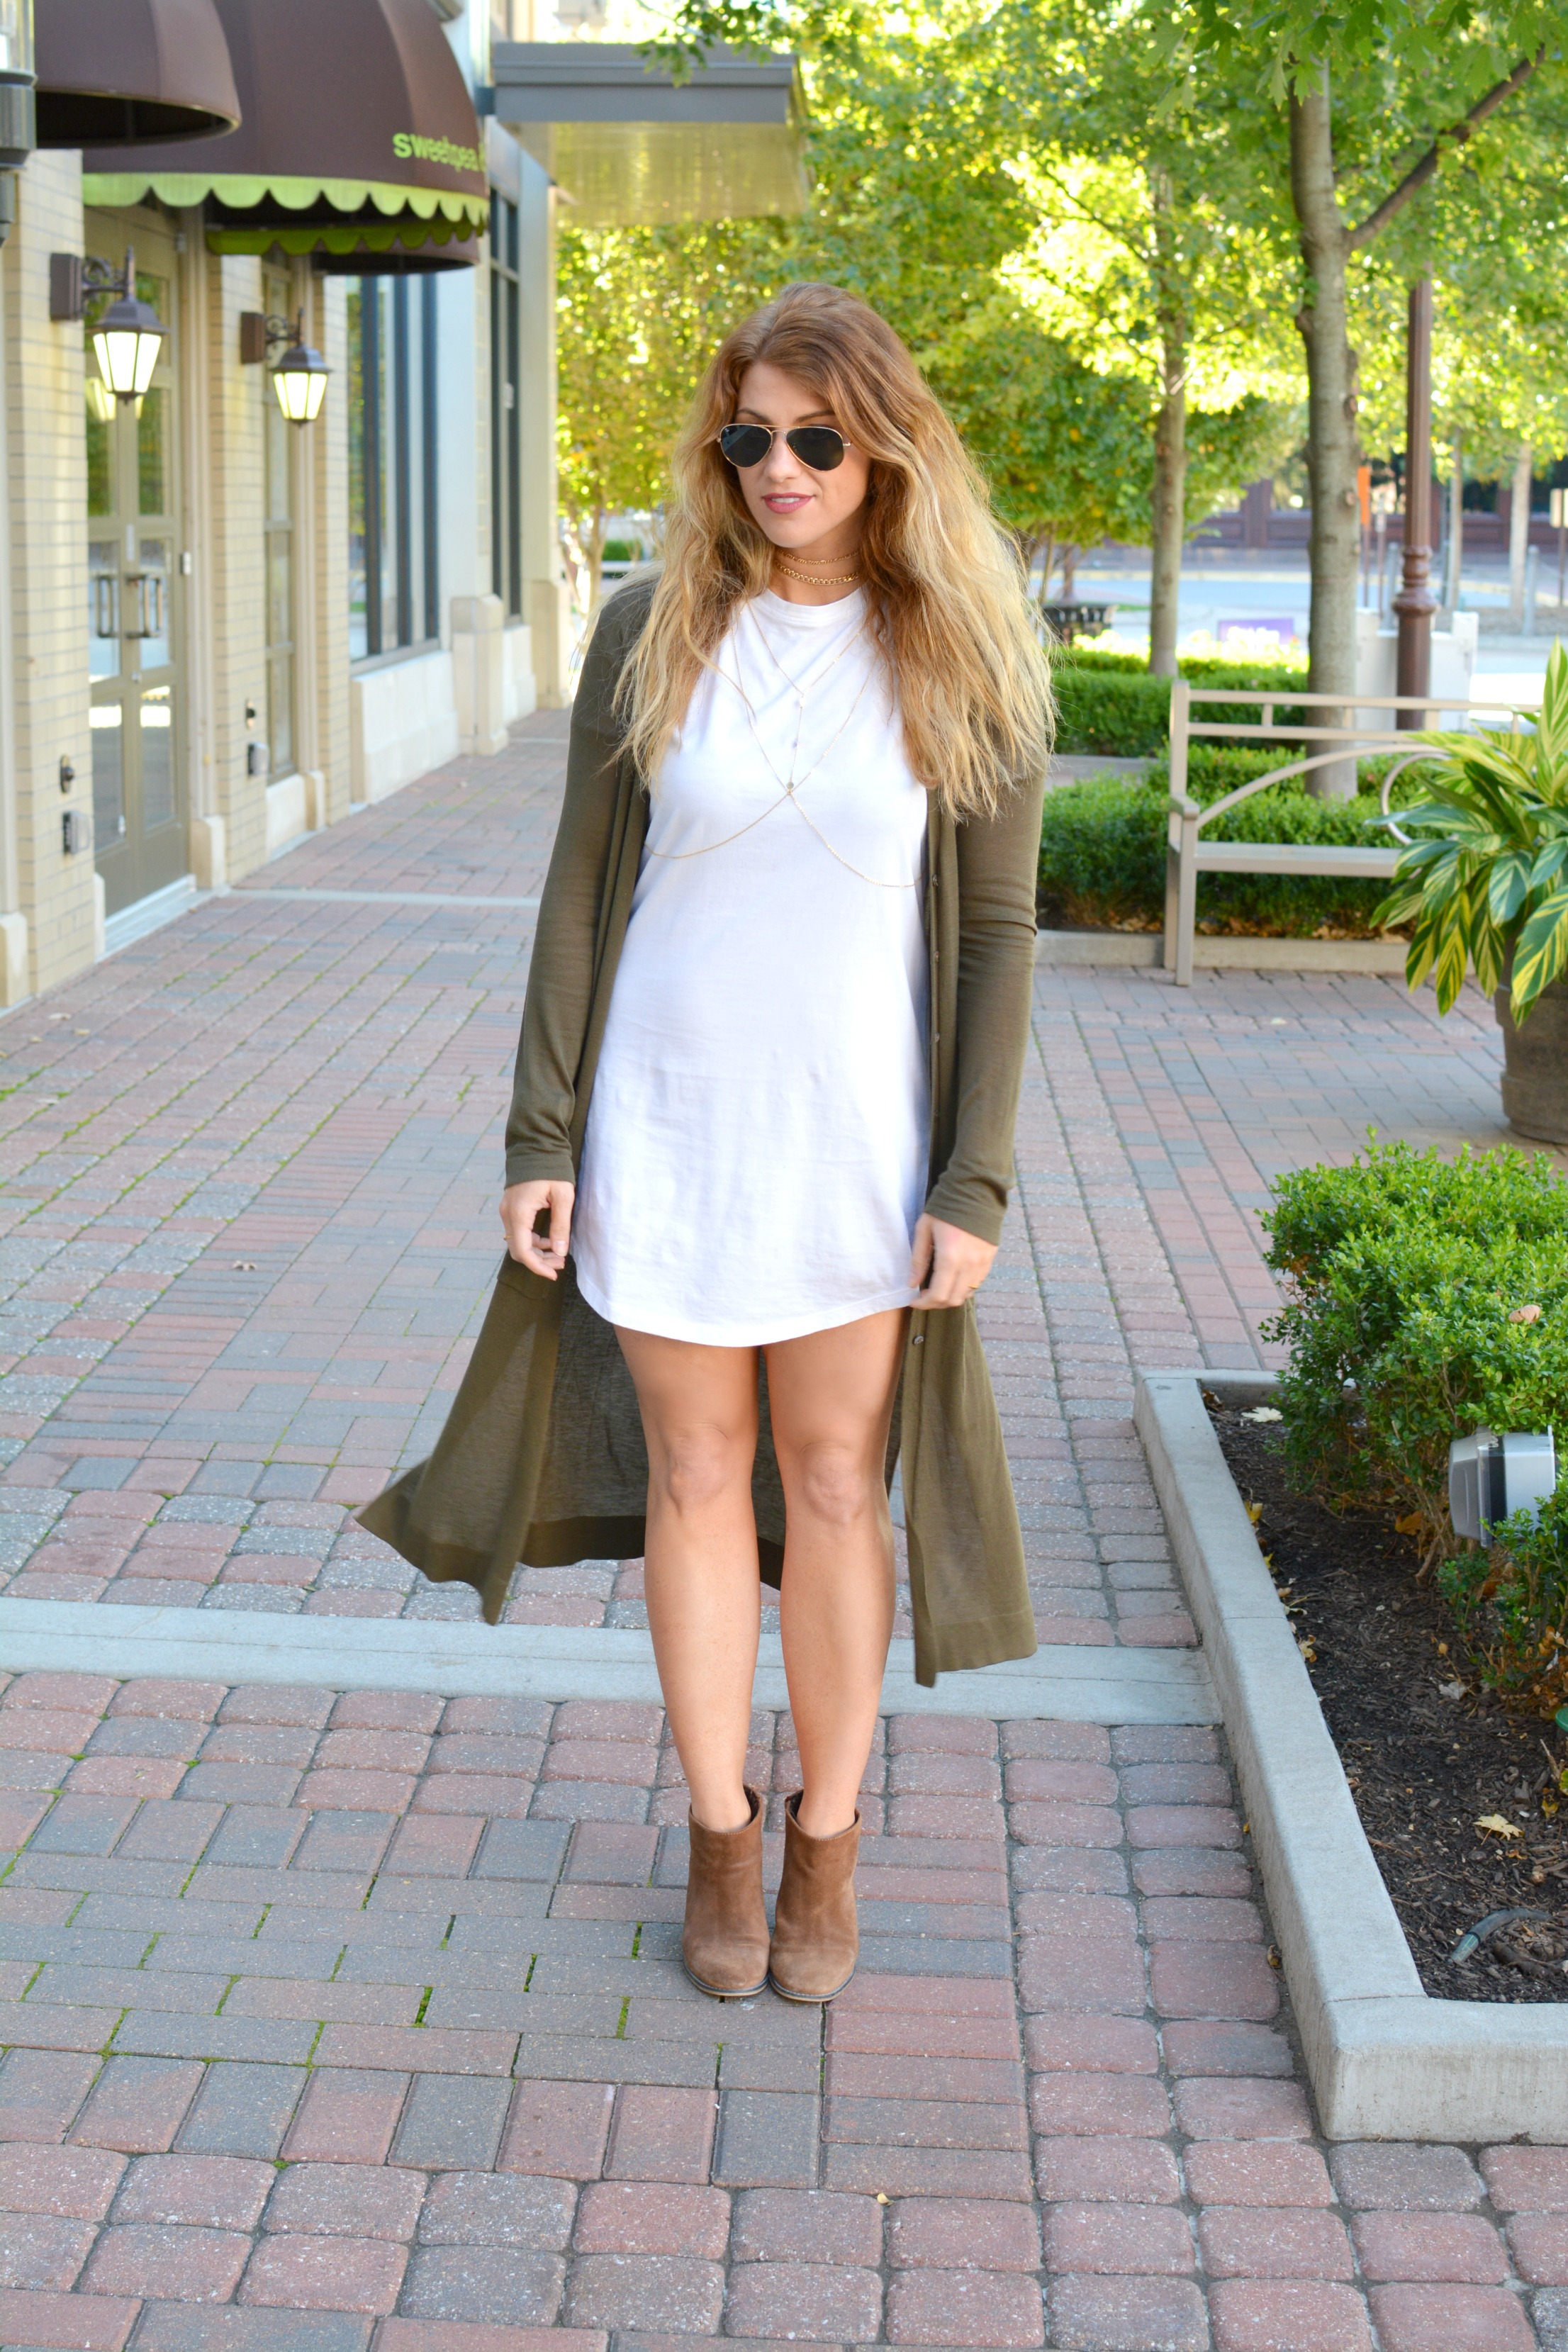 Ashley from LSR in an olive long cardigan, t-shirt dress, and suede ankle boots